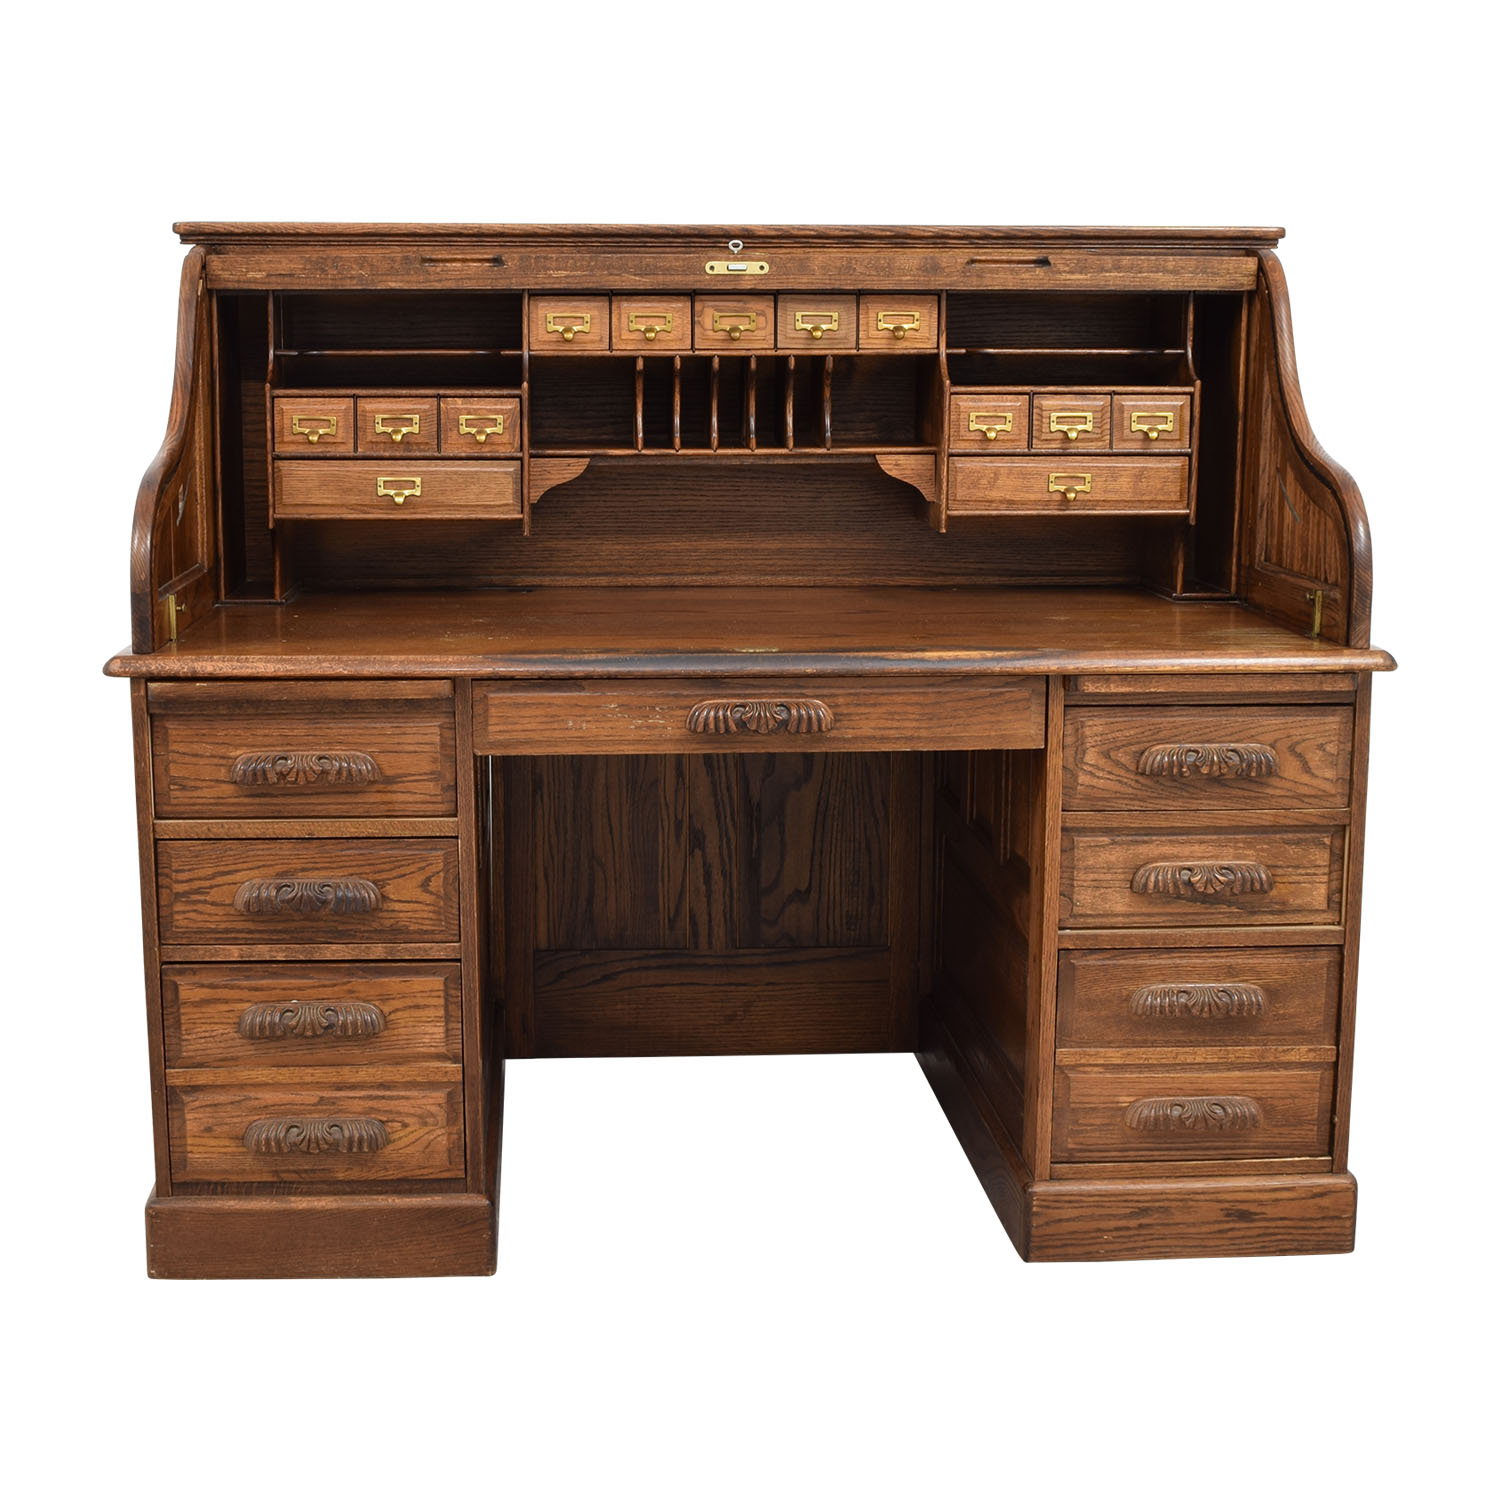 Antique oak desk antique furniture for Antique furniture desk